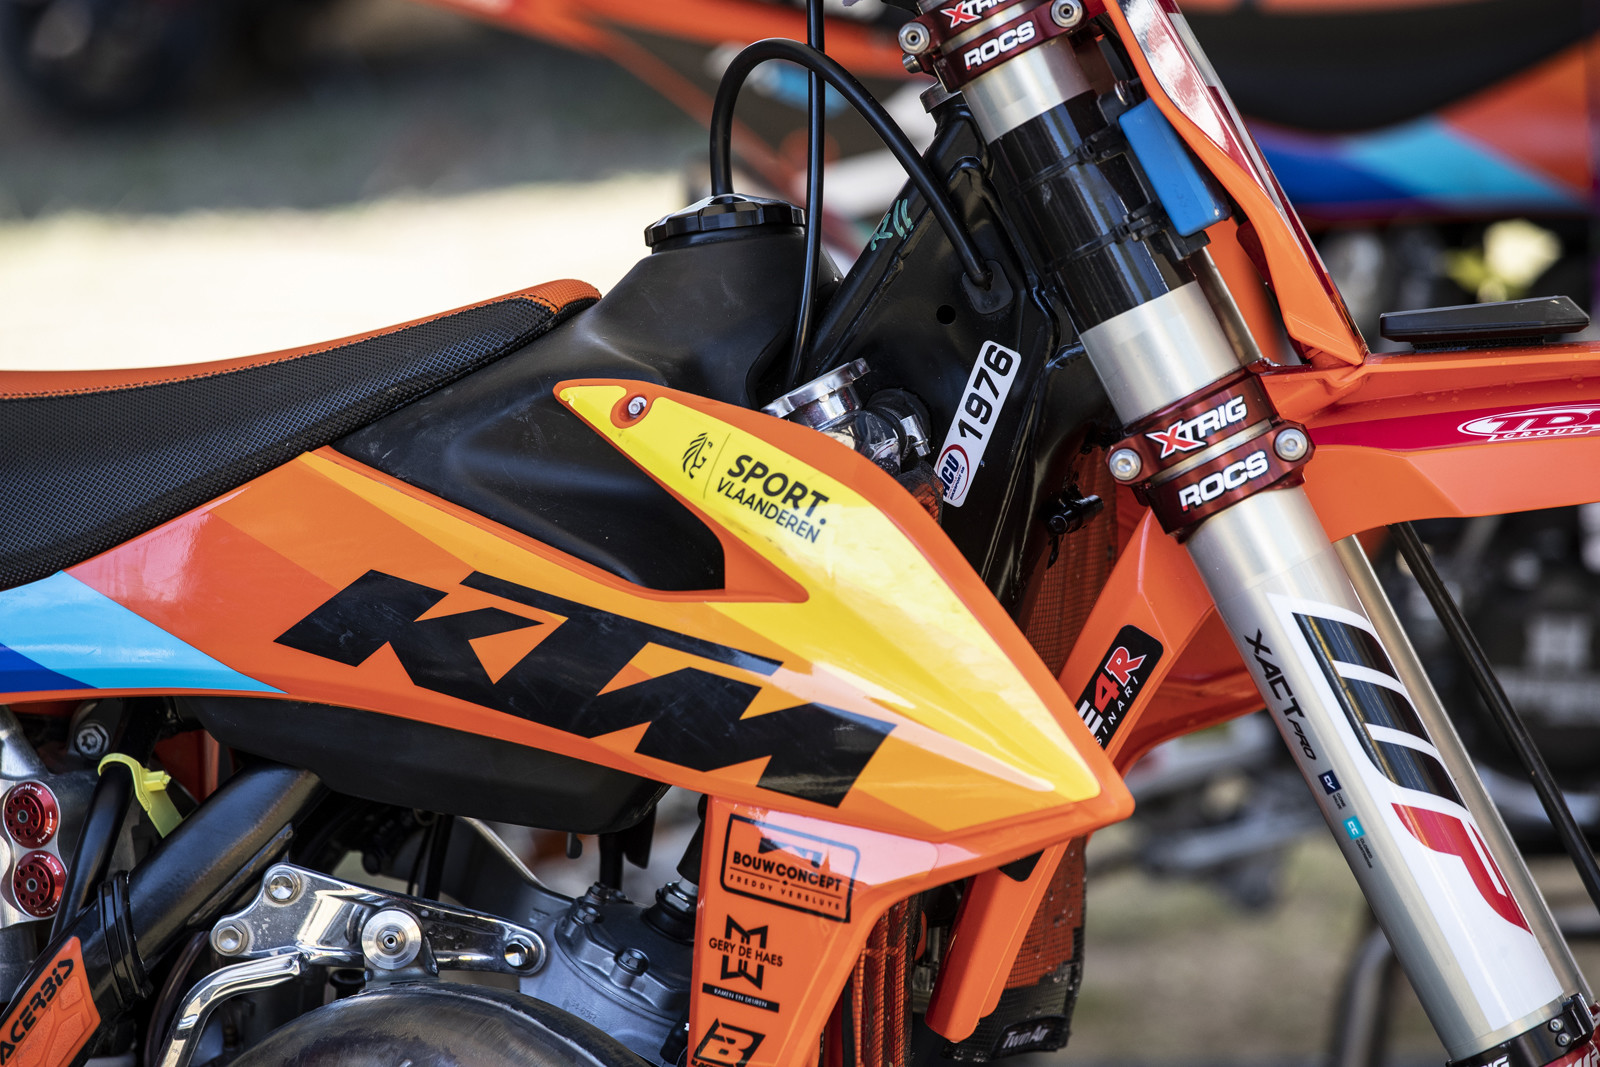 Before we get to the big bikes, let's look at Liam Everts' (Stephen's son) KTM 125 SX.